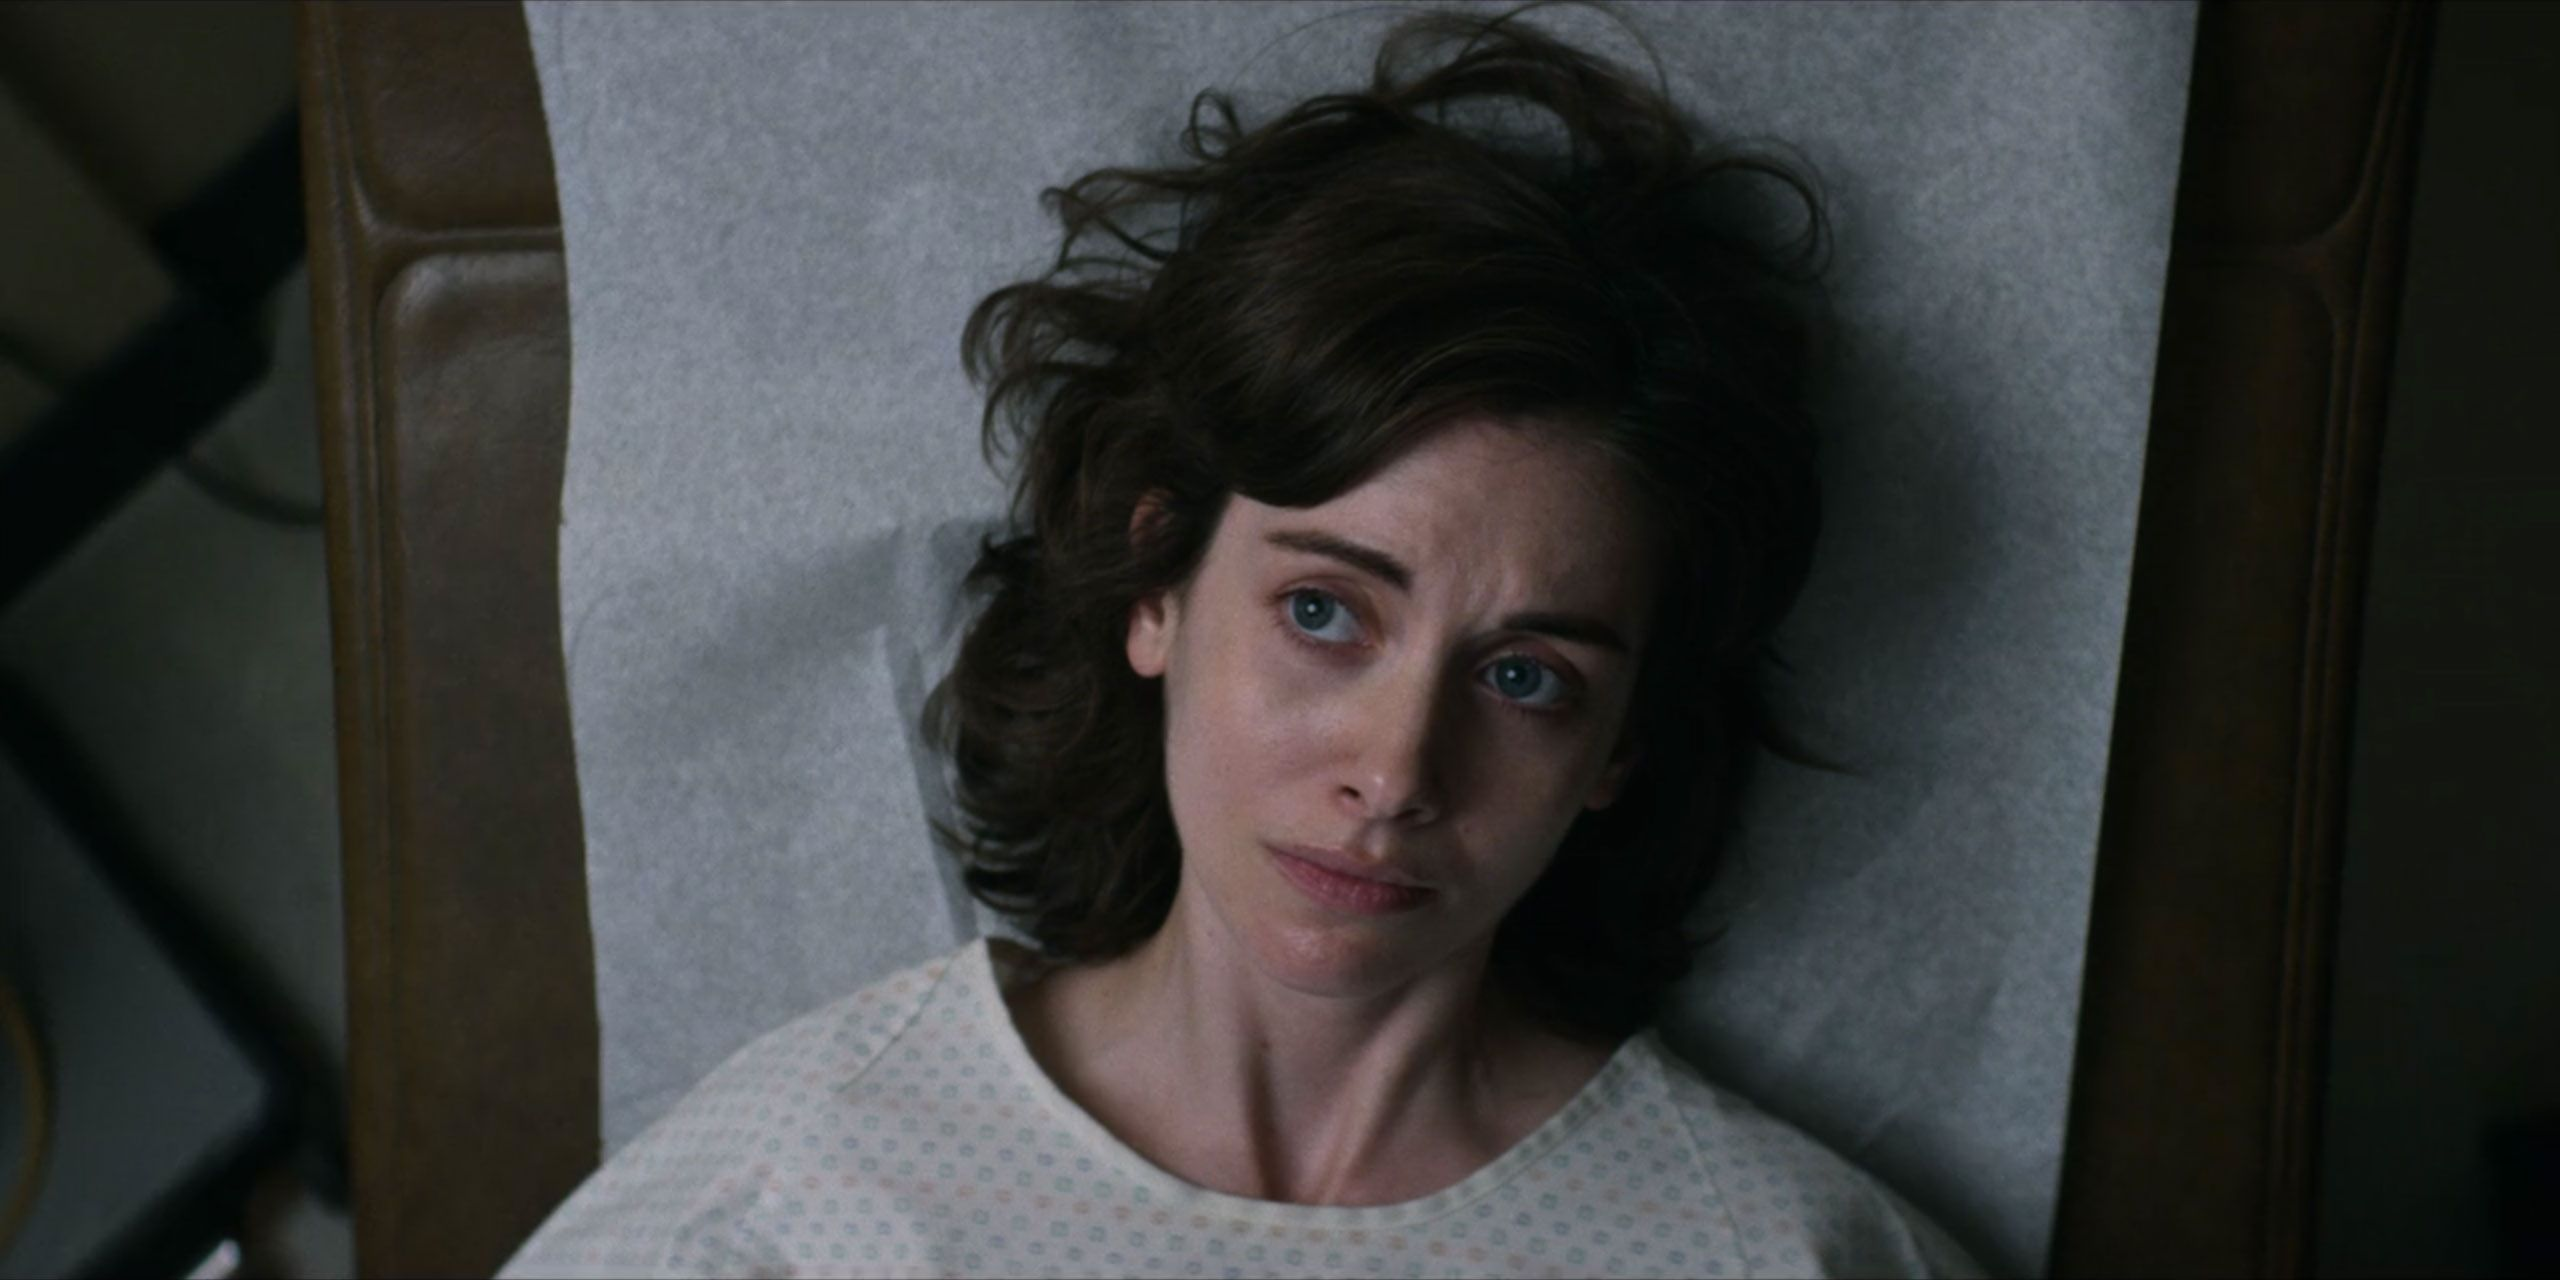 Alison Brie Sex Scandal glow's abortion scene is the most pro-women i've seen on tv